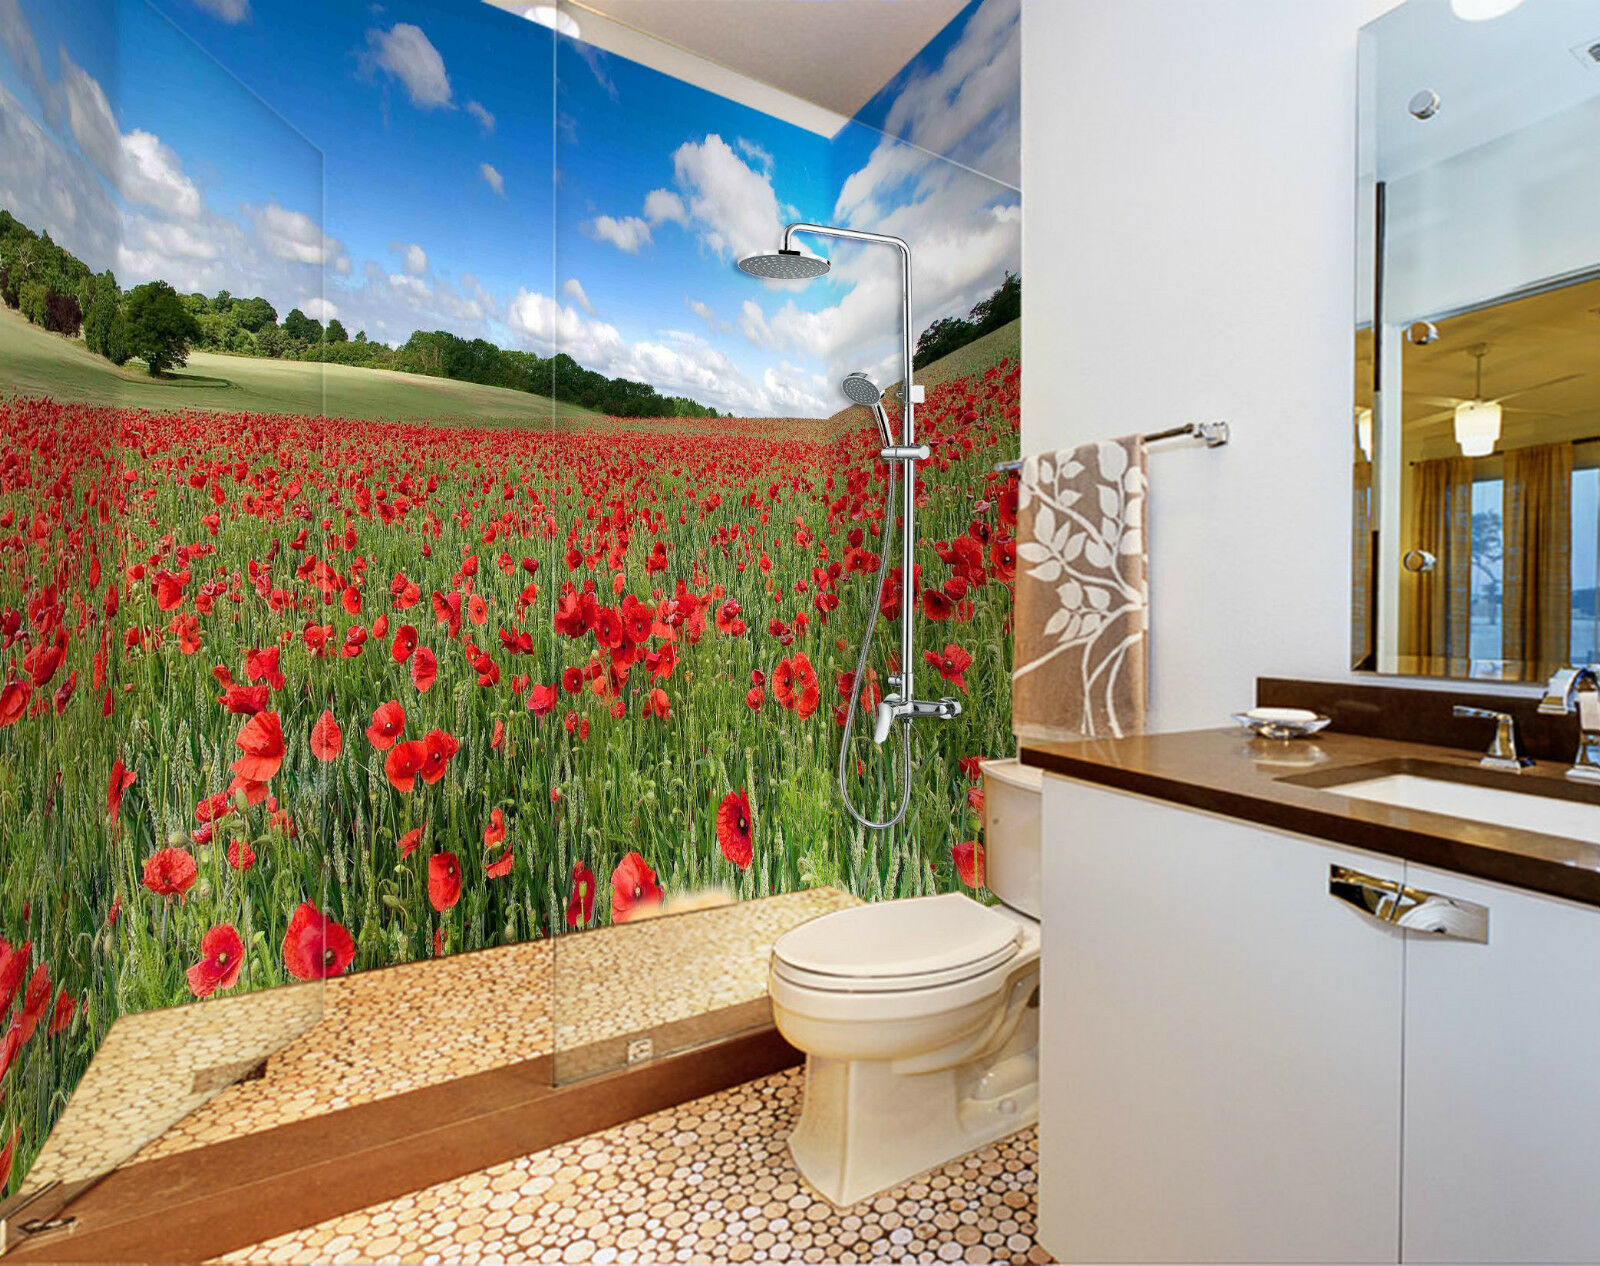 3D Lawn Flowers 097 WallPaper Bathroom Print Decal Wall Deco AJ WALLPAPER CA